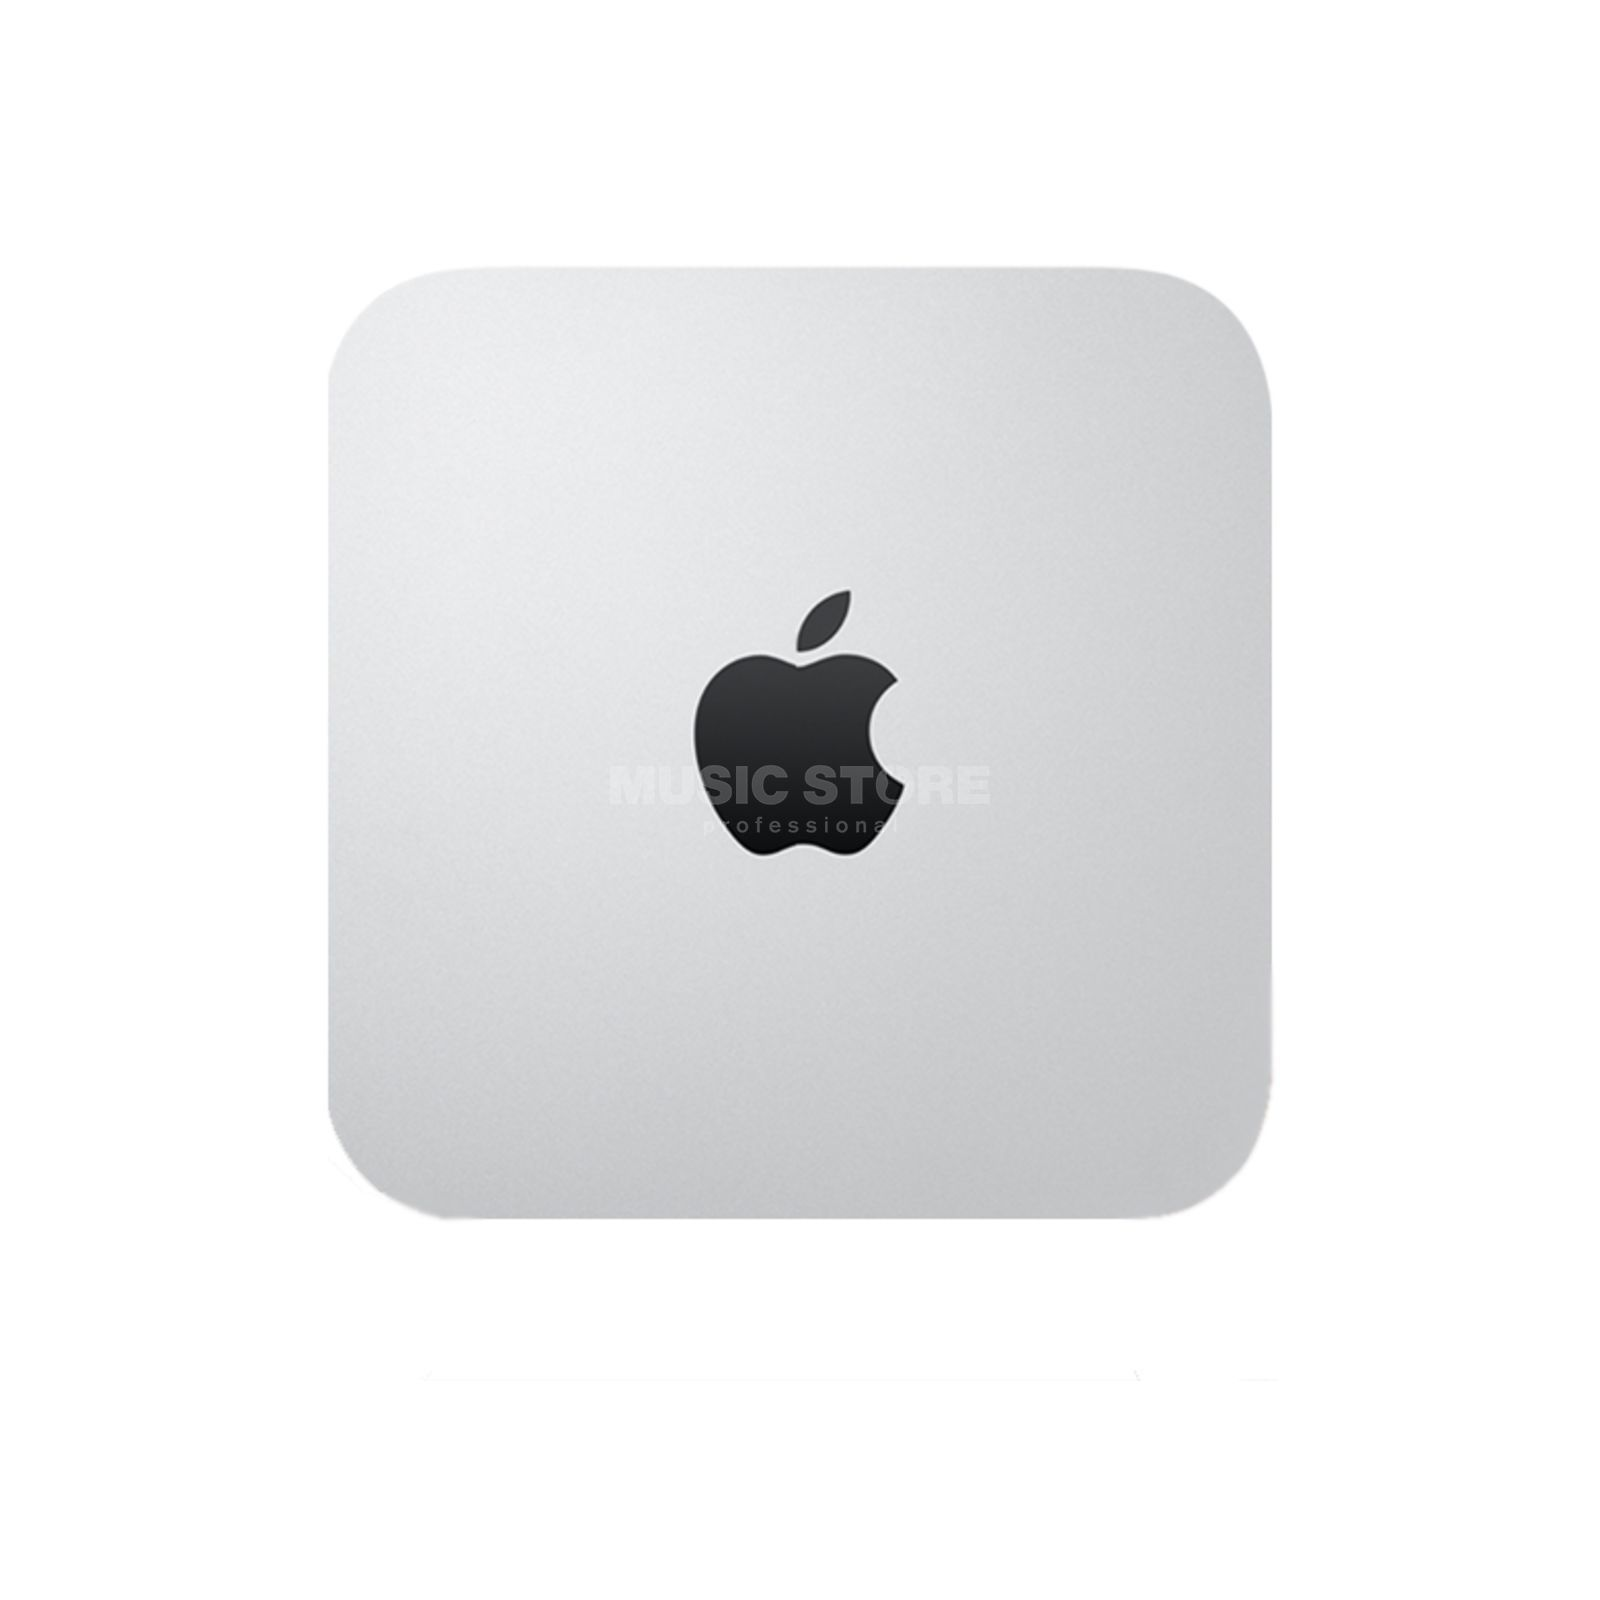 Apple Mac mini 2.8GHz Dual-Core i5 8GB RAM, 1TB FD, Intel Iris Produktbillede